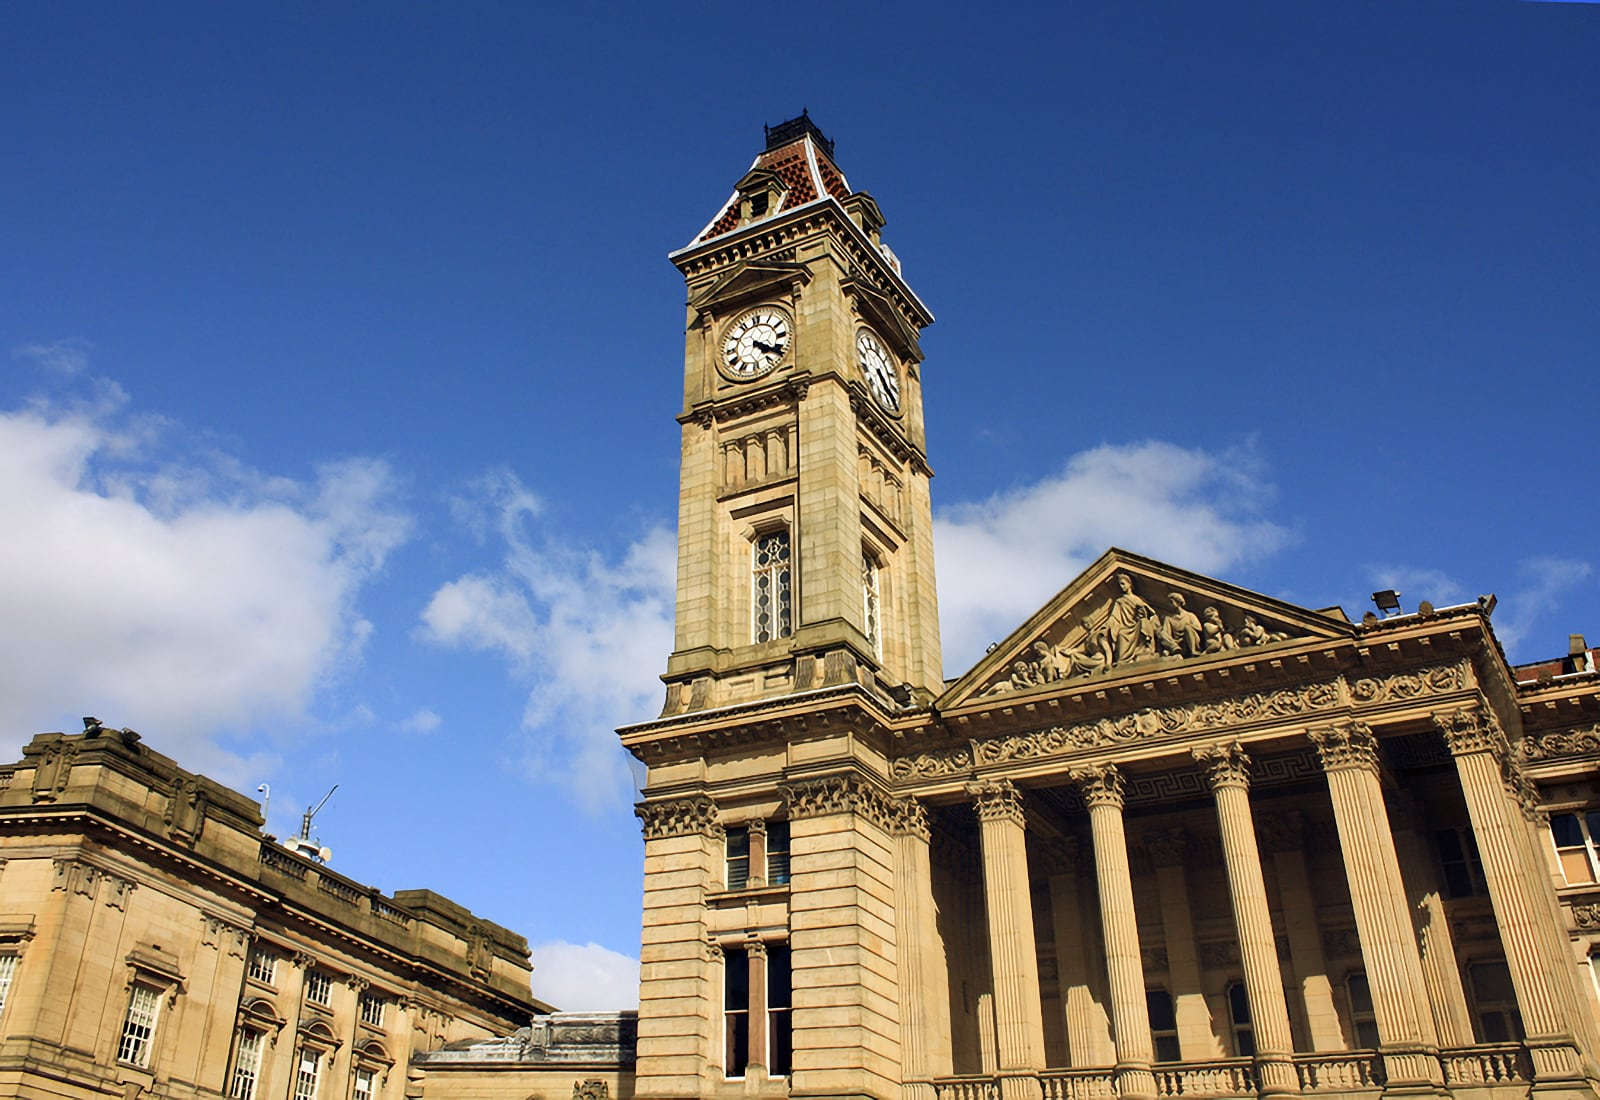 Photo looking up at Birmingham city council clock tower and building against a mostly blue sky background